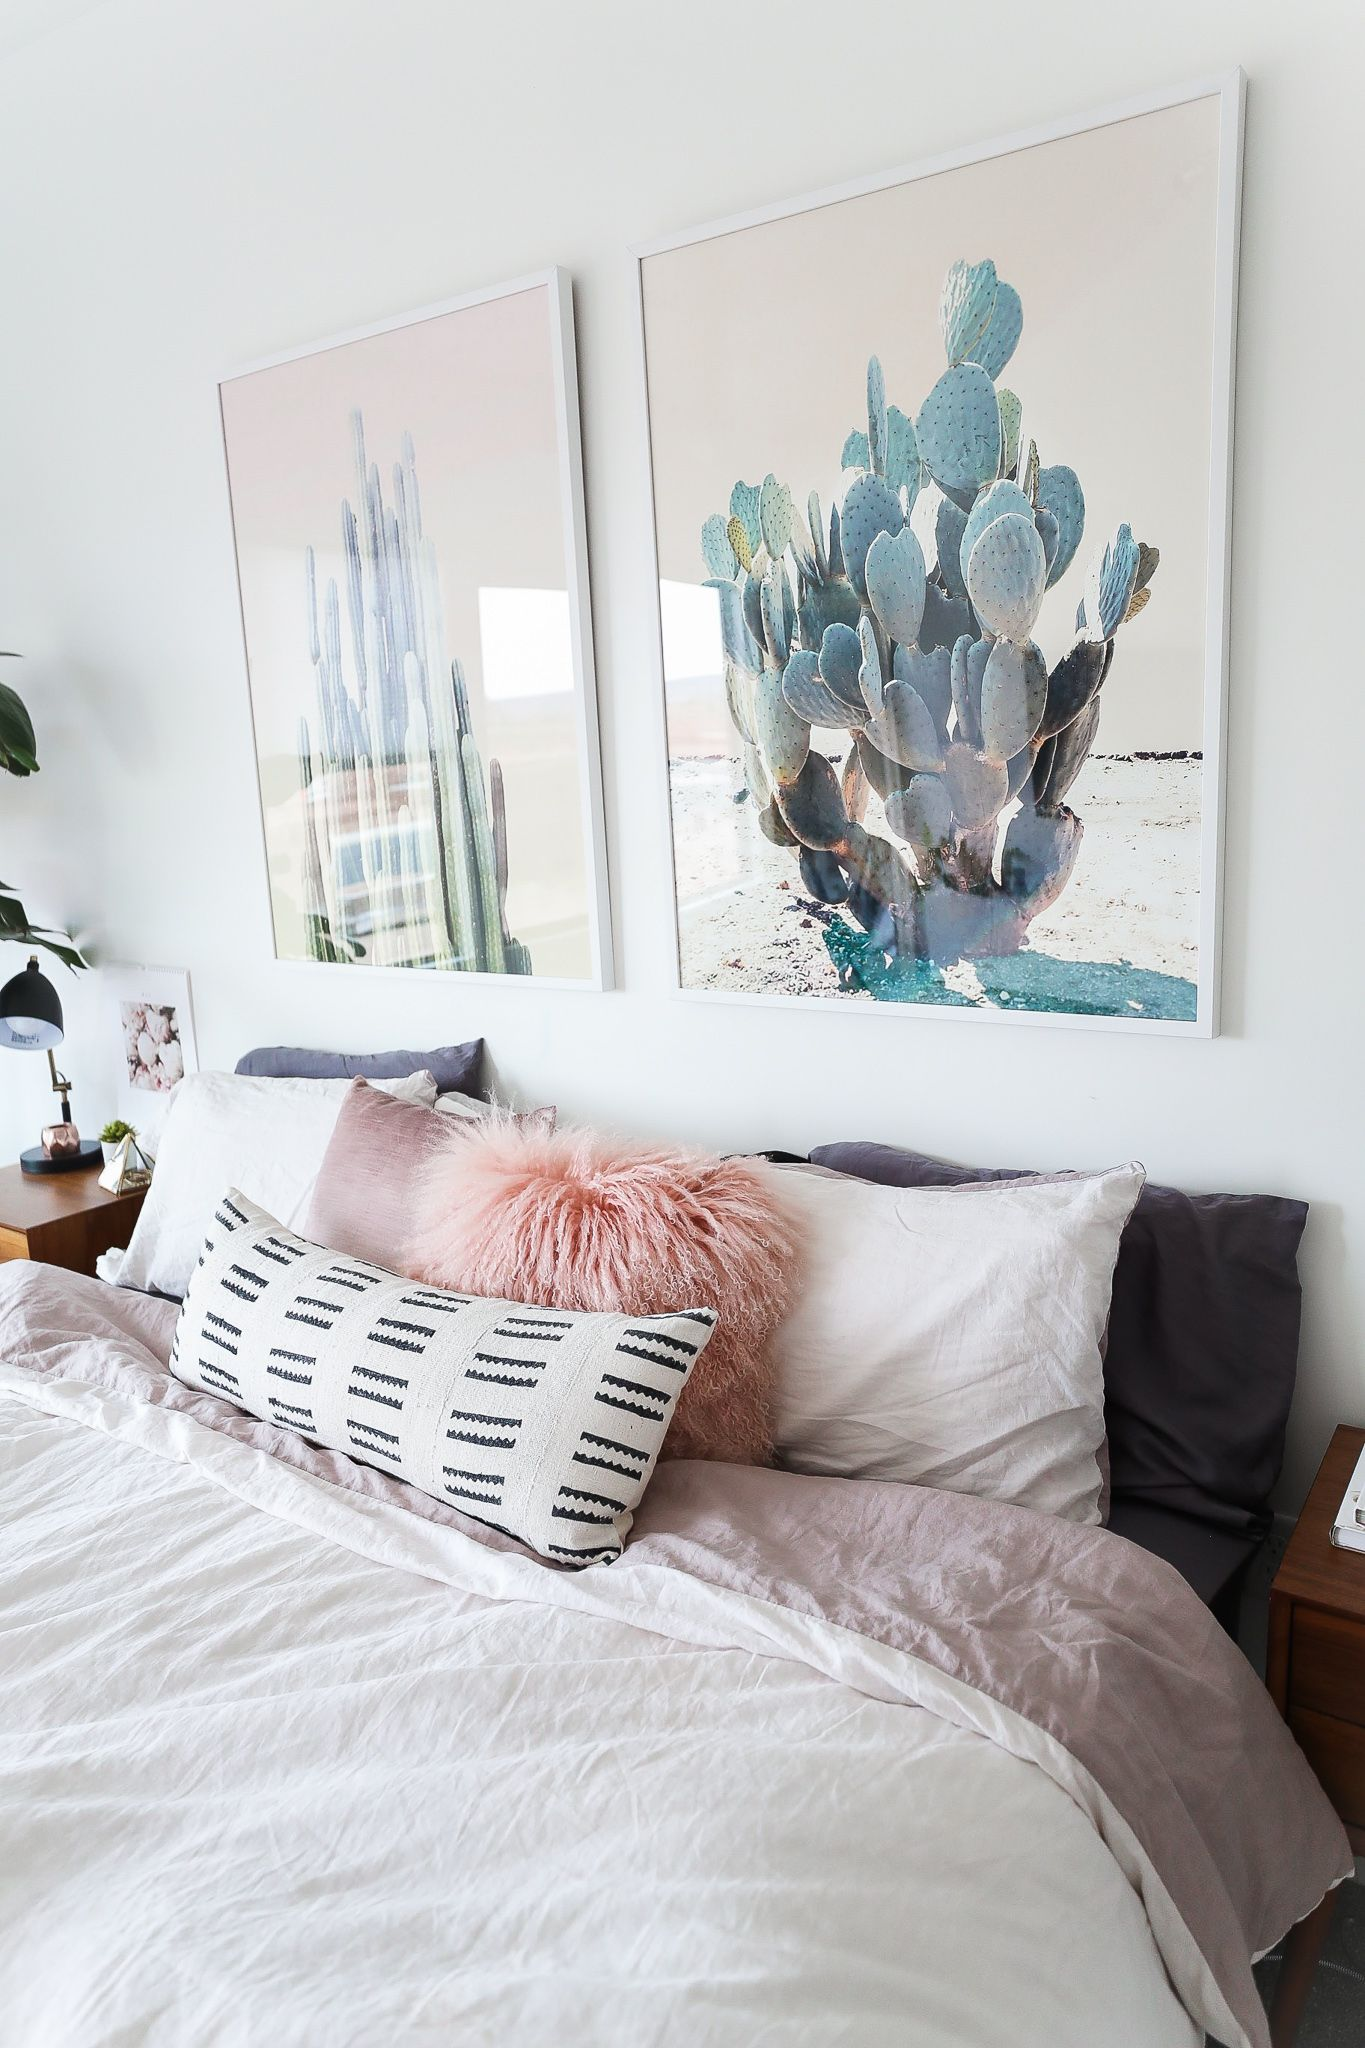 Wall decor for teen bedroom pin by jessica duffield on decorate  pinterest  decorating